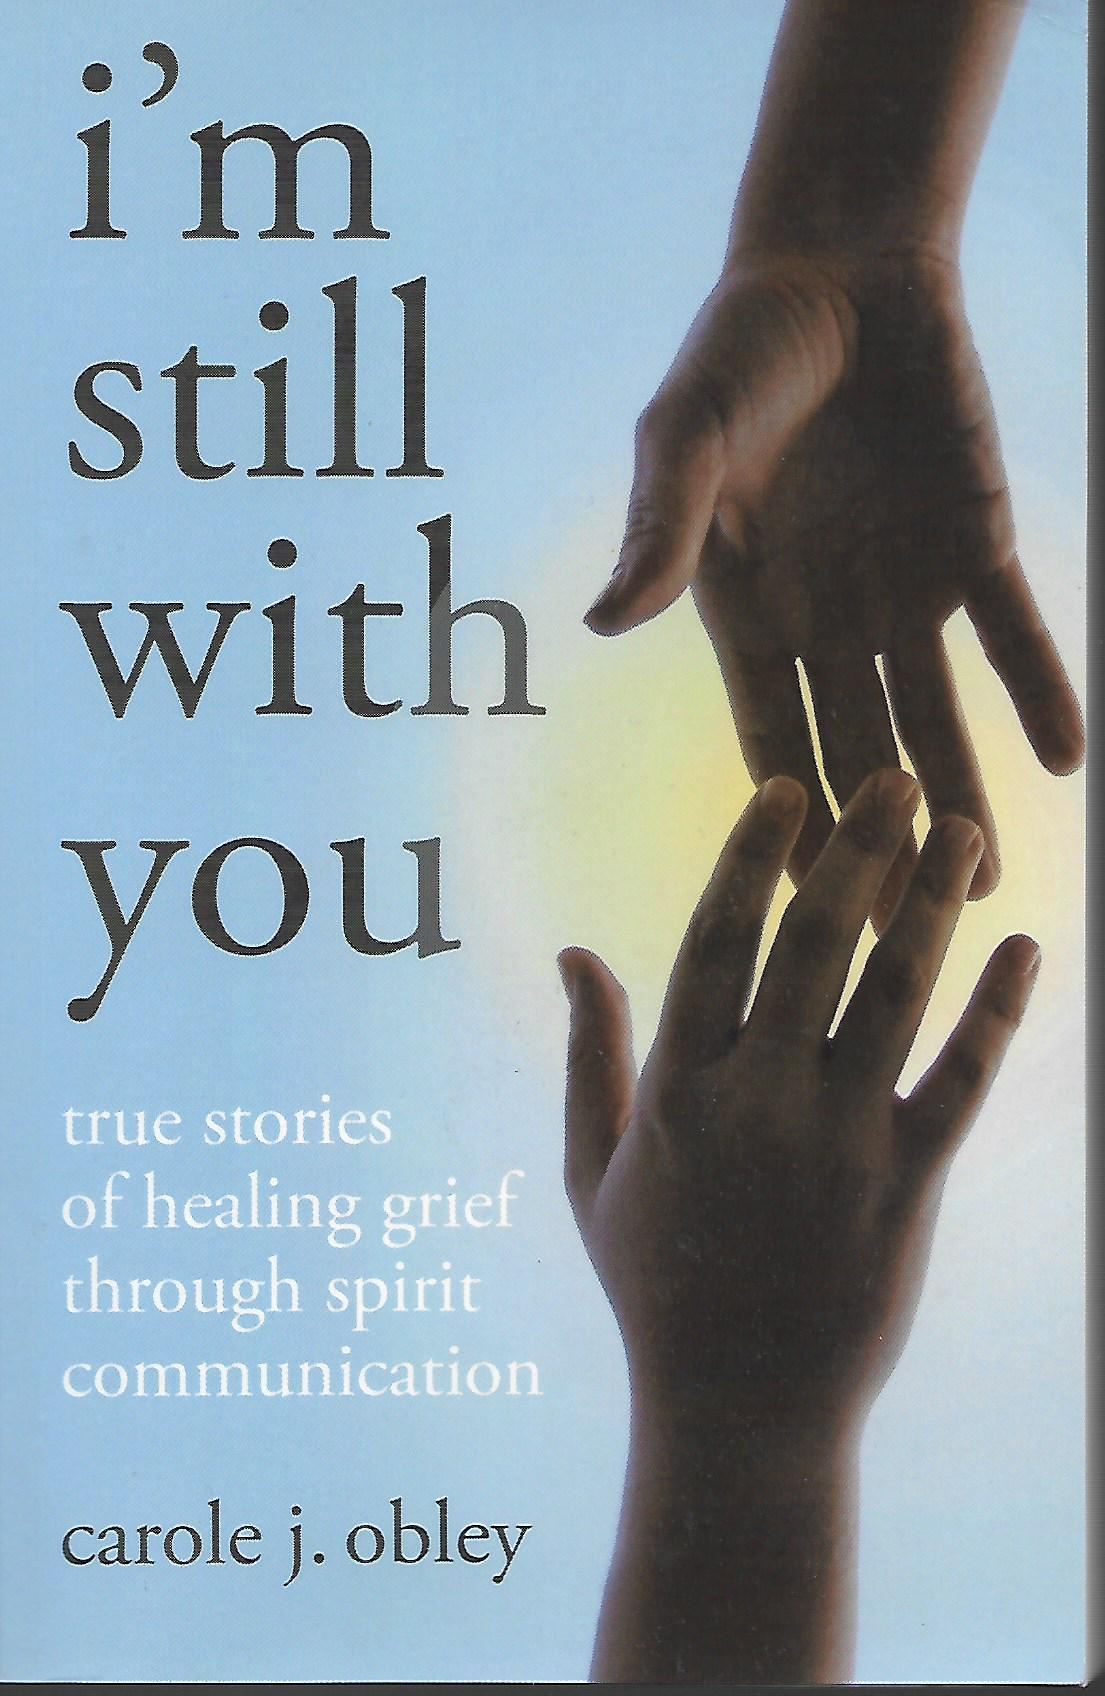 I'm Still with You: True Stories of Healing Grief Through Spirit Communication, Carole J. Obley